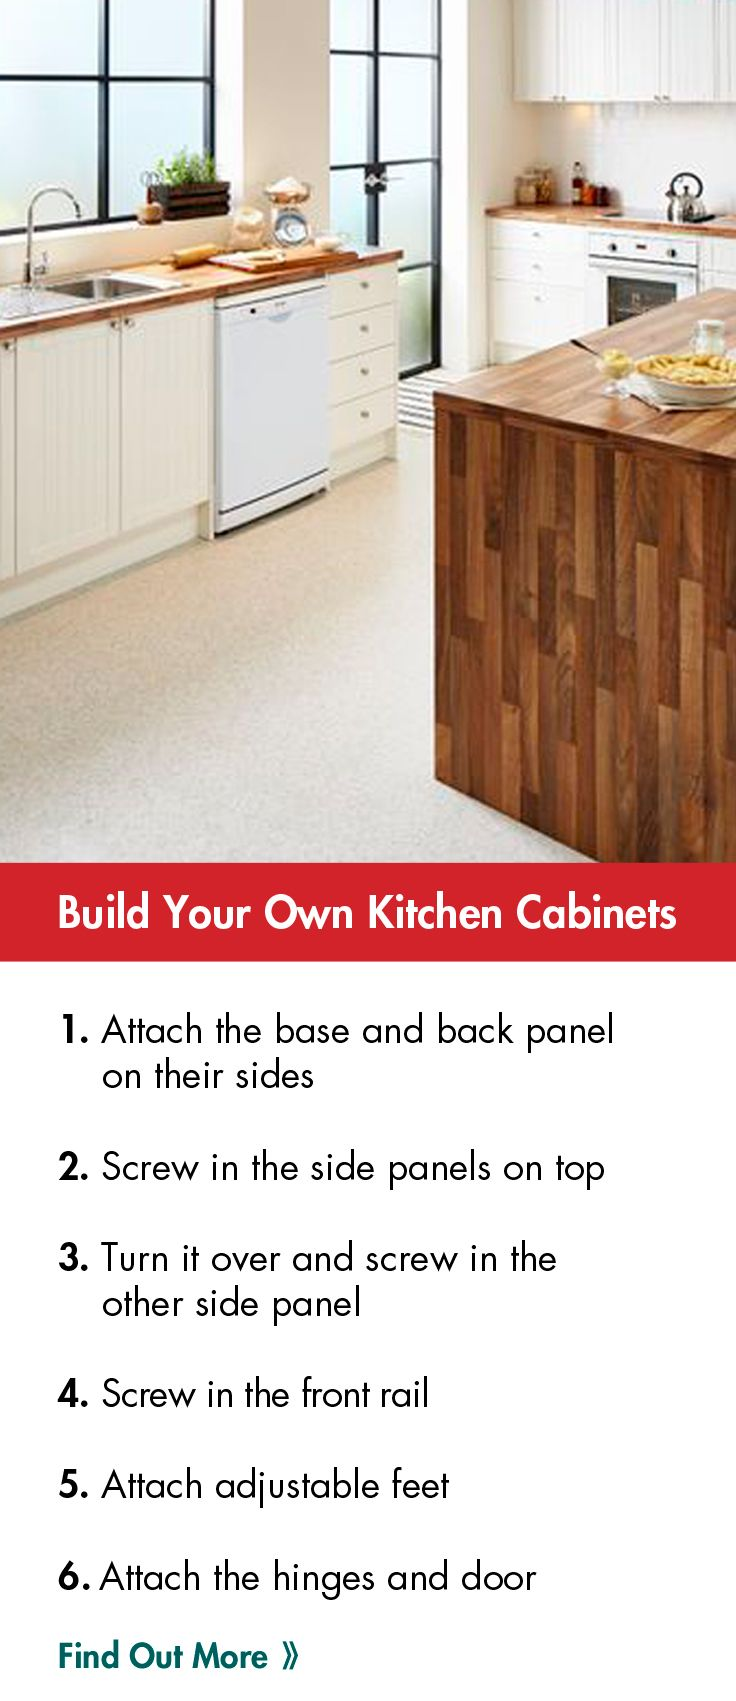 Who's thinking of revamping their kitchen? #Easter #DIY